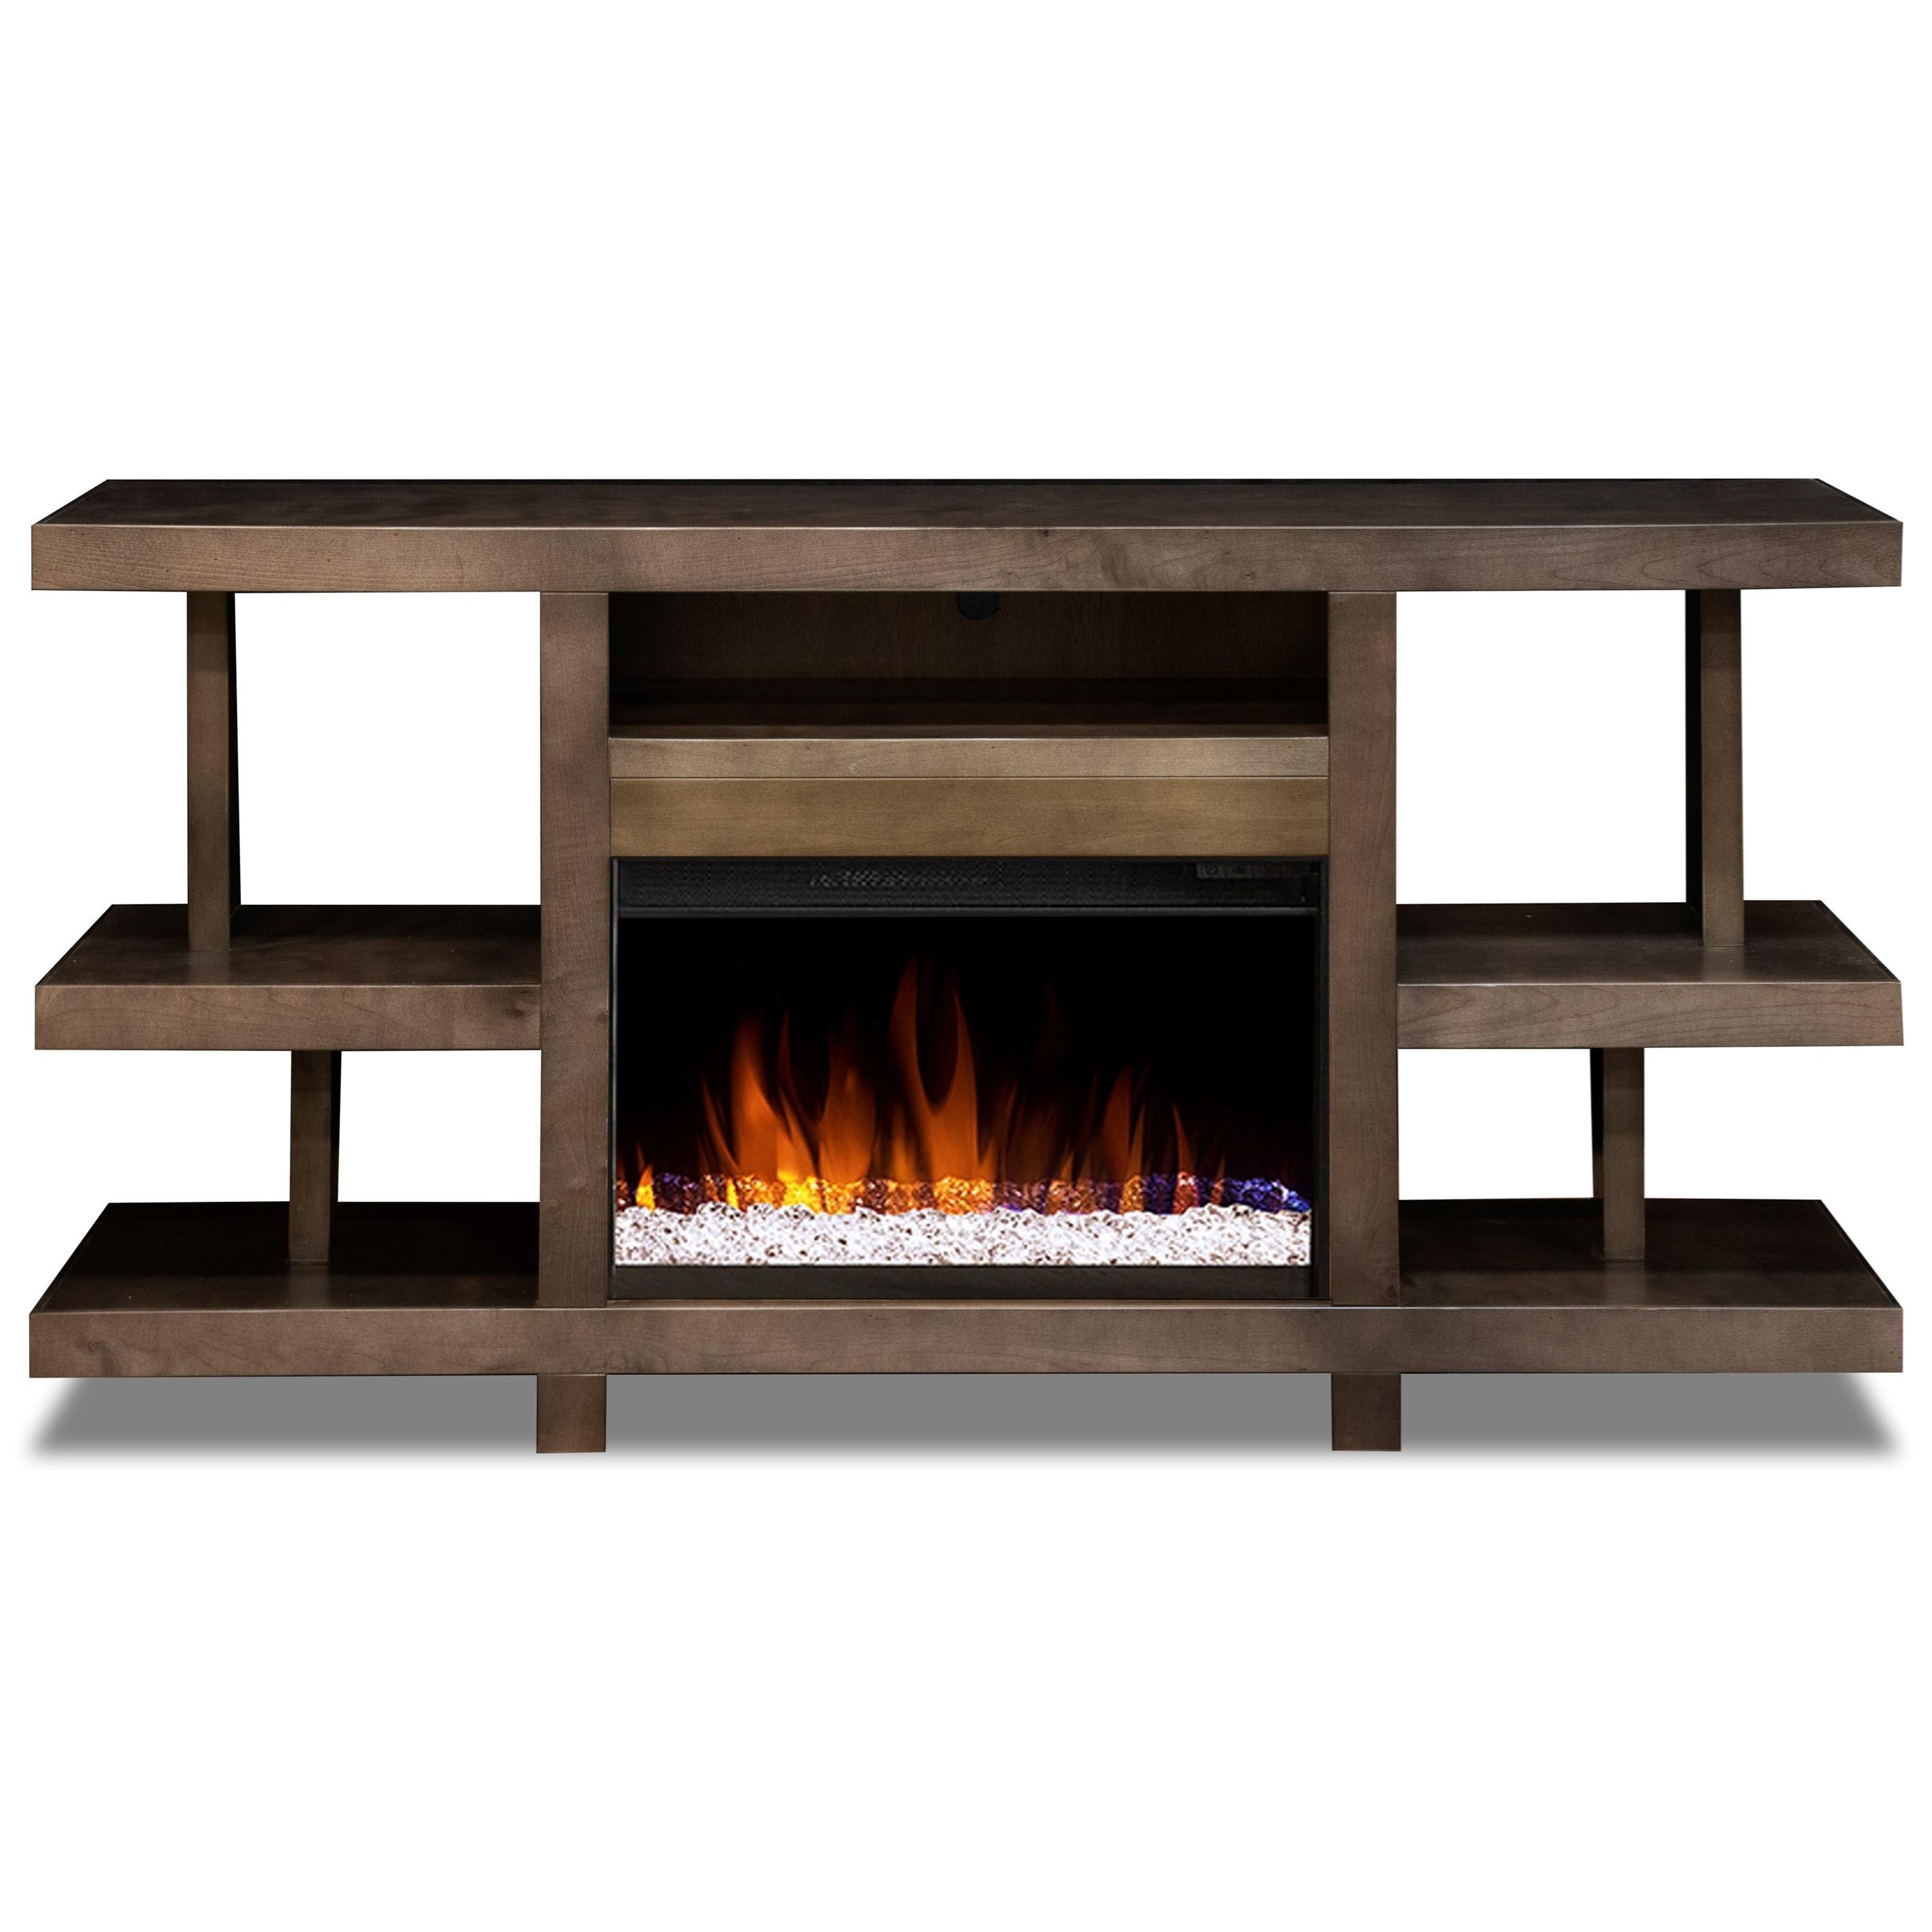 """Aurora 66"""" Fireplace Console by Legends Furniture at EFO Furniture Outlet"""